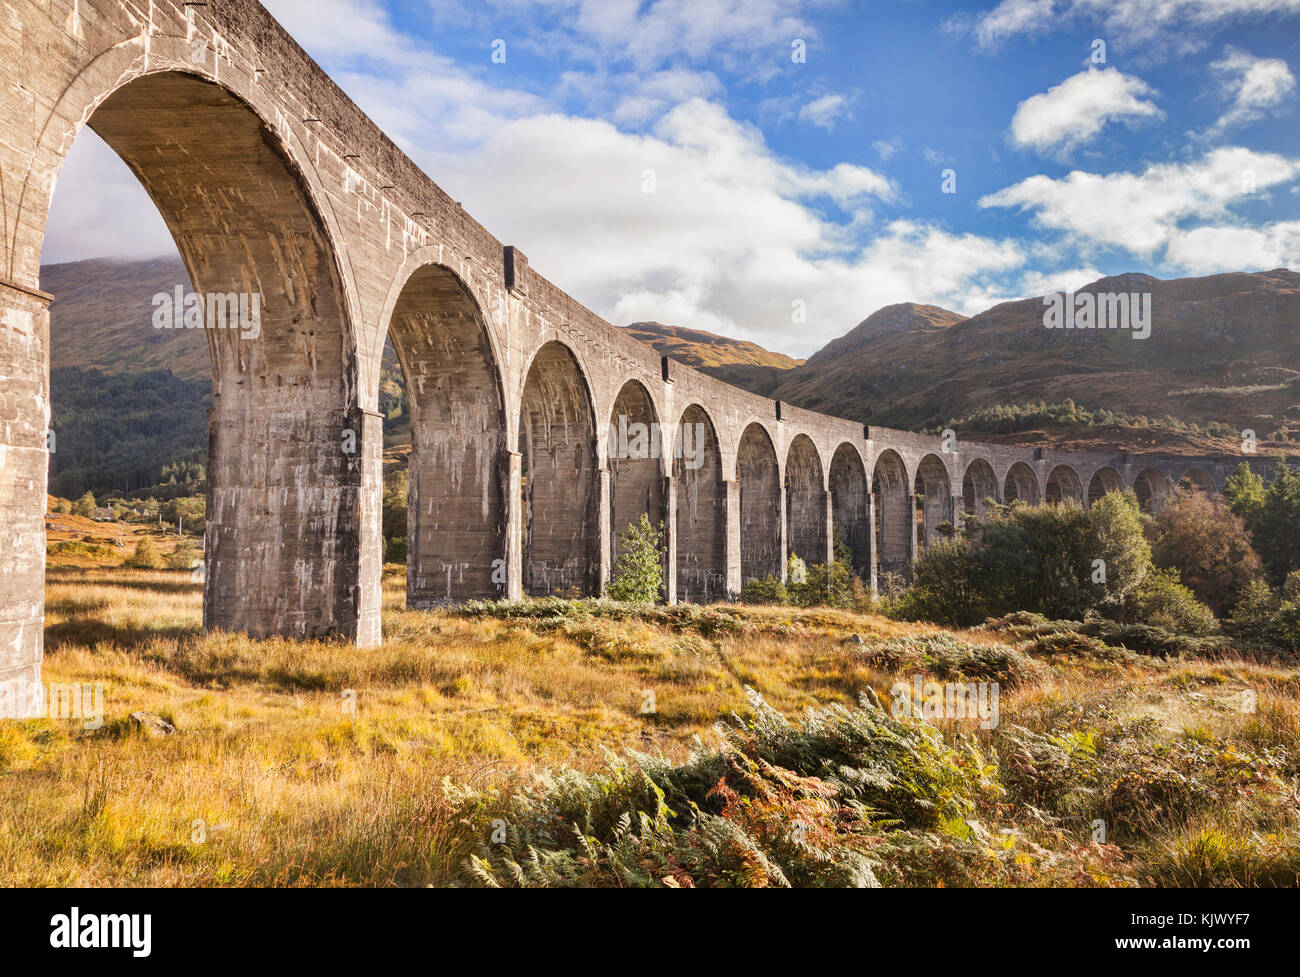 Glenfinnan Viaduct, Lochaber, Highland, Scotland. UK - Stock Image